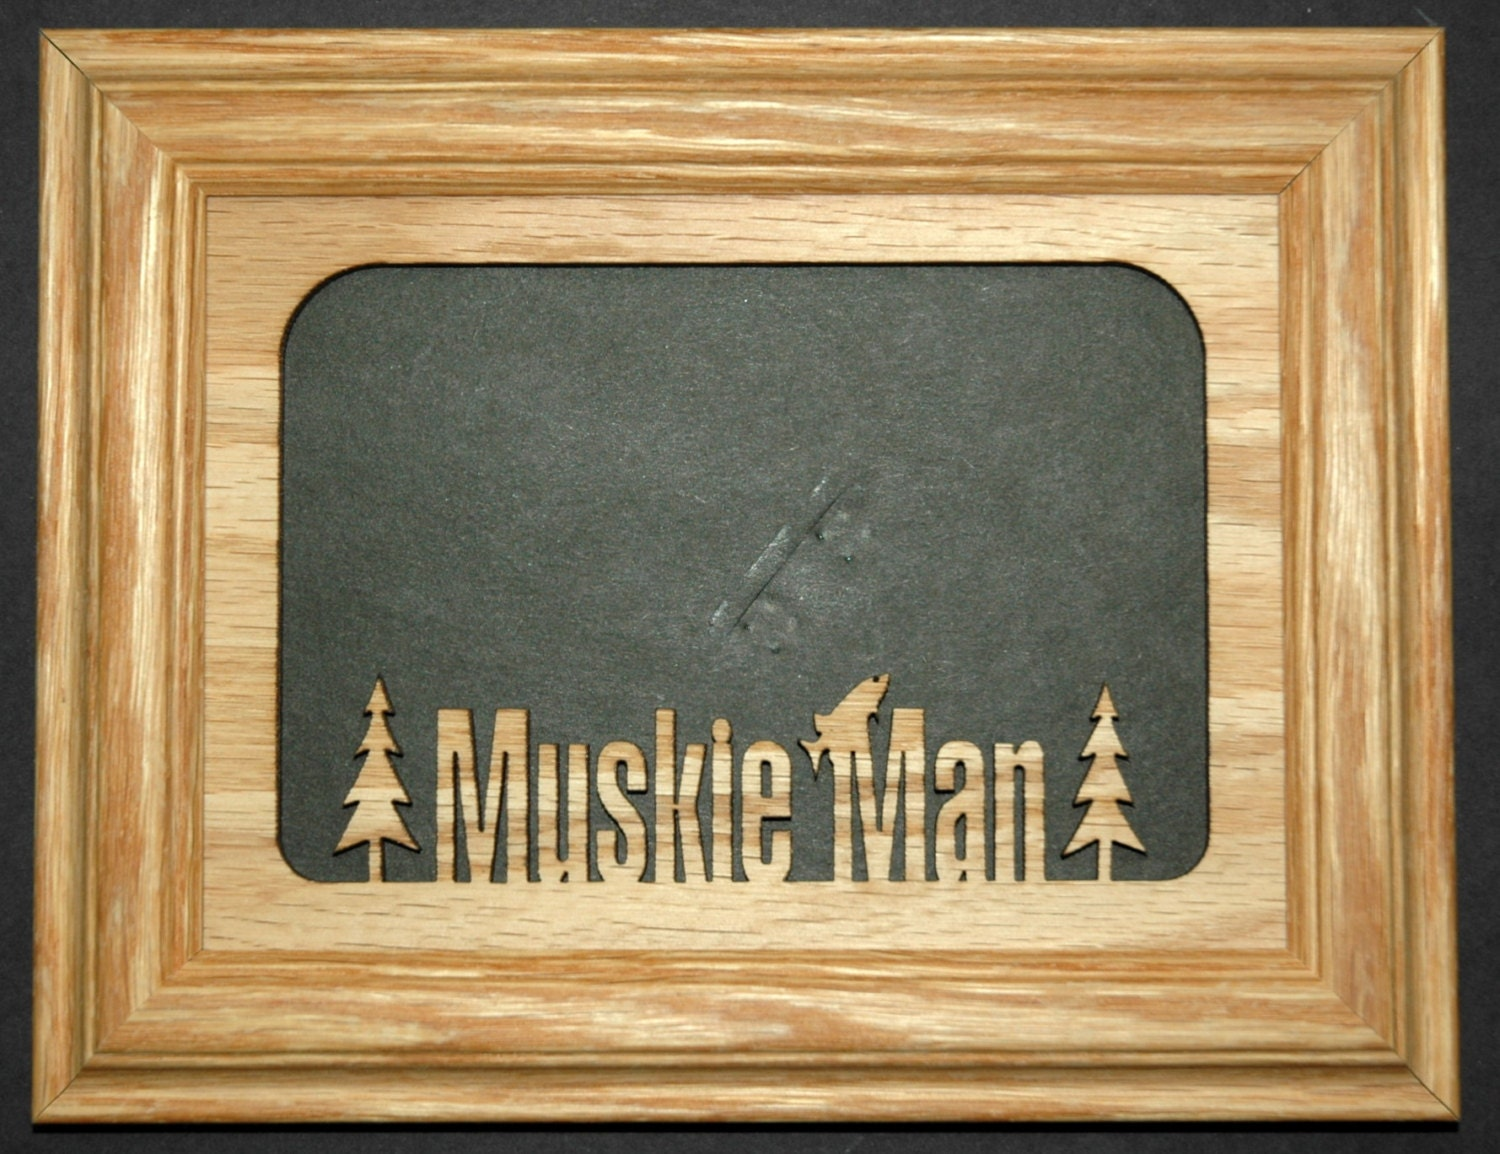 Muskie man fishing picture frame 5x7 for Fishing picture frame